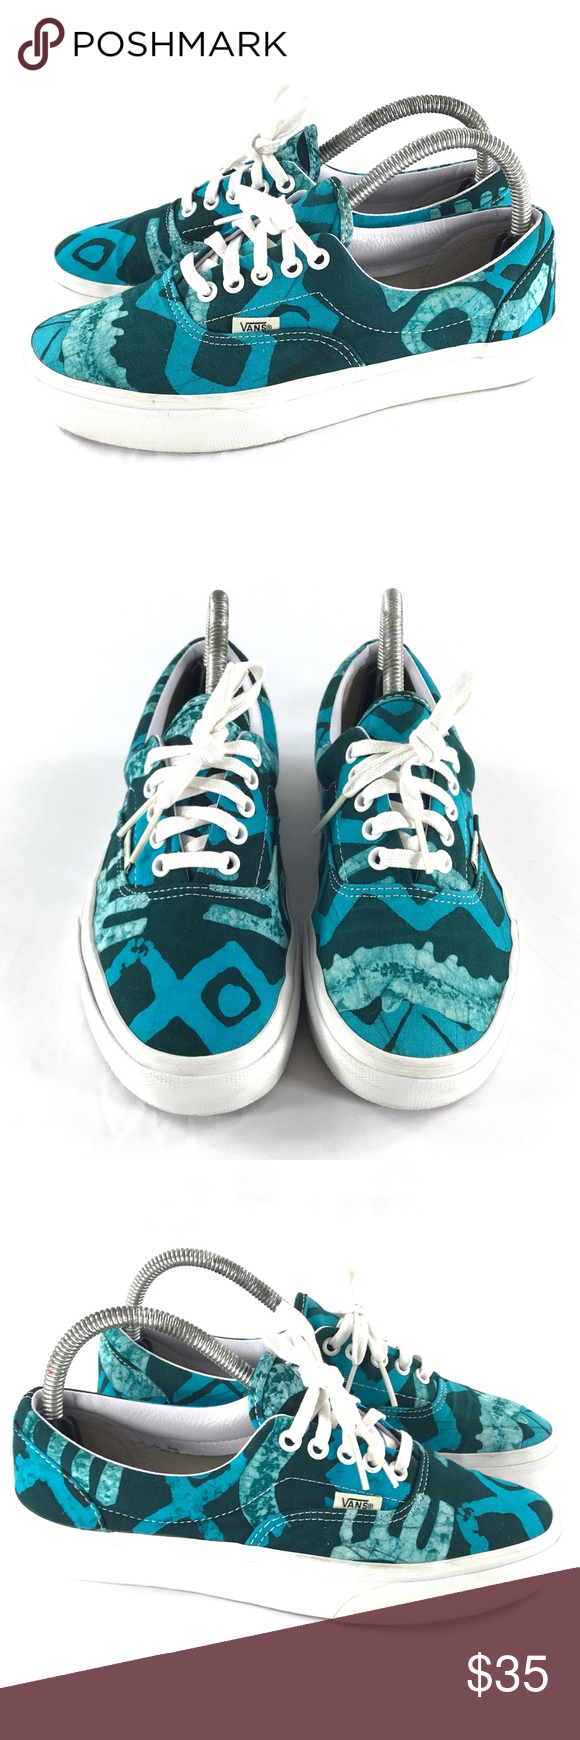 f6fa36b905 Vans Della Batik Print Shoes Size 6.5 men 8 Women